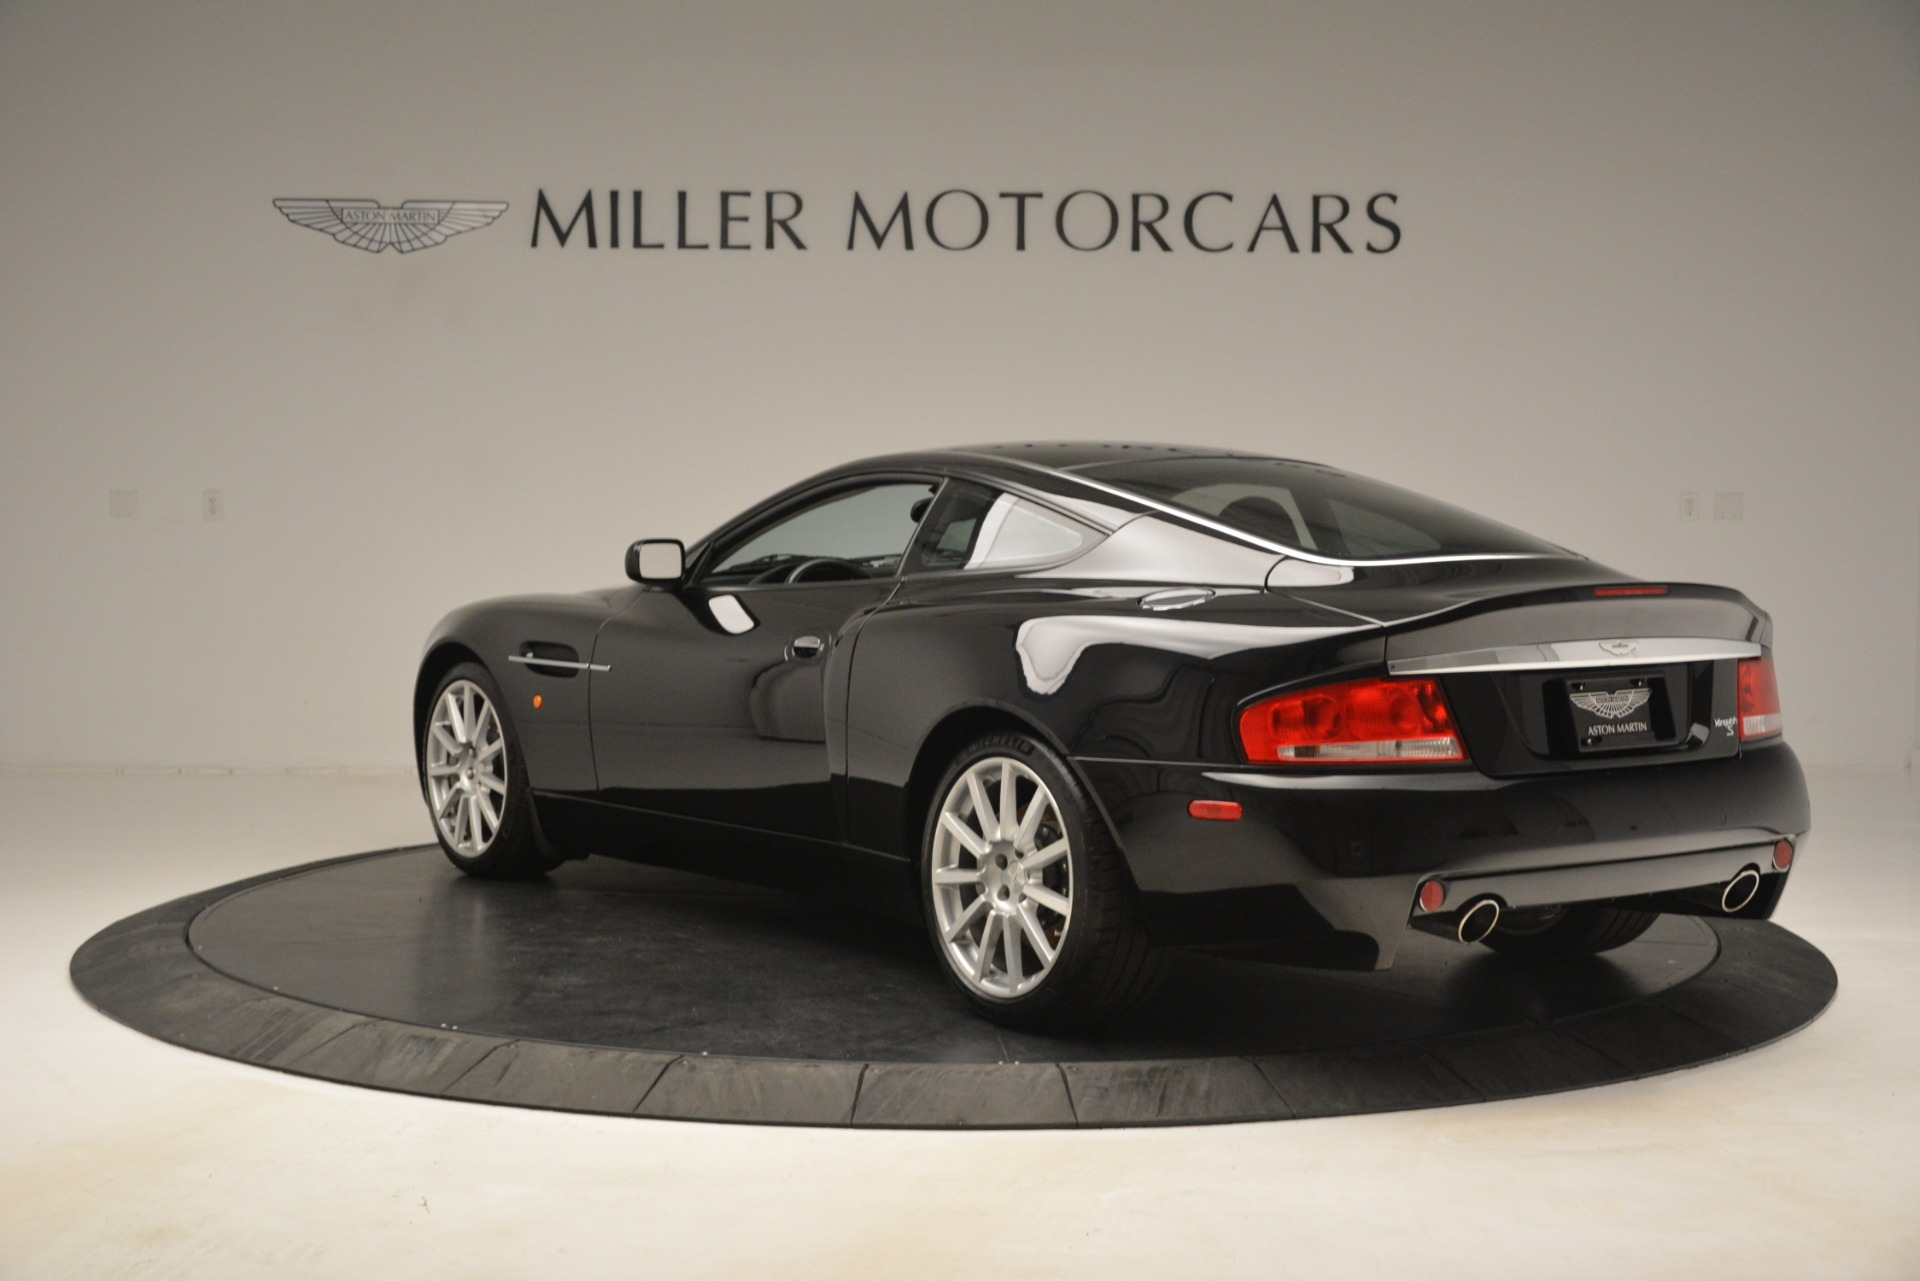 Used 2005 Aston Martin V12 Vanquish S For Sale In Greenwich, CT 3218_p5